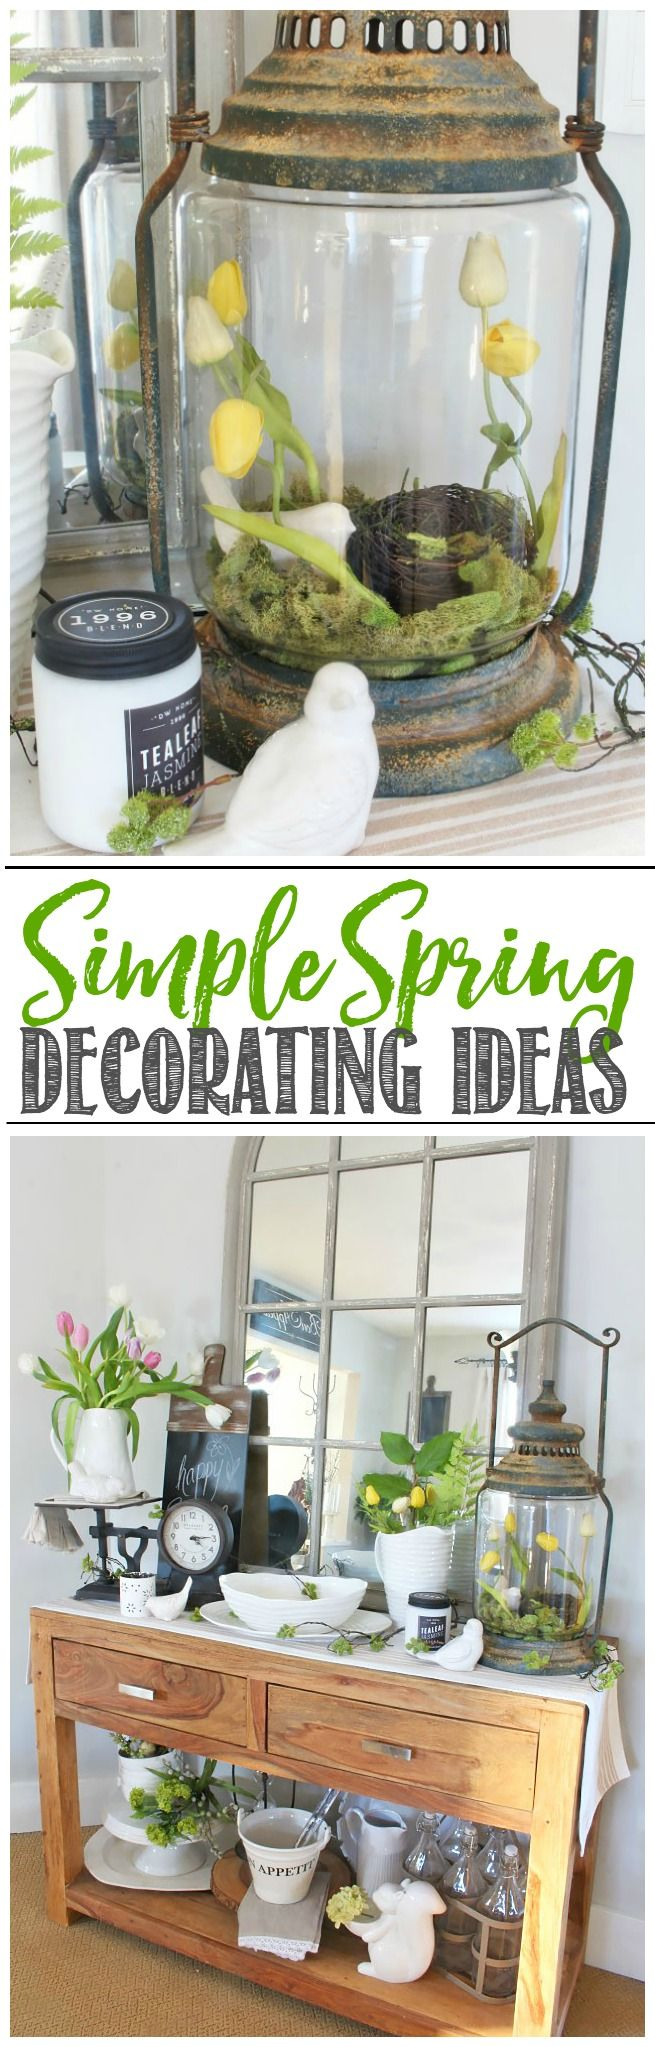 Marvelous Quick And Easy Spring Decorating Ideas Great Pictures